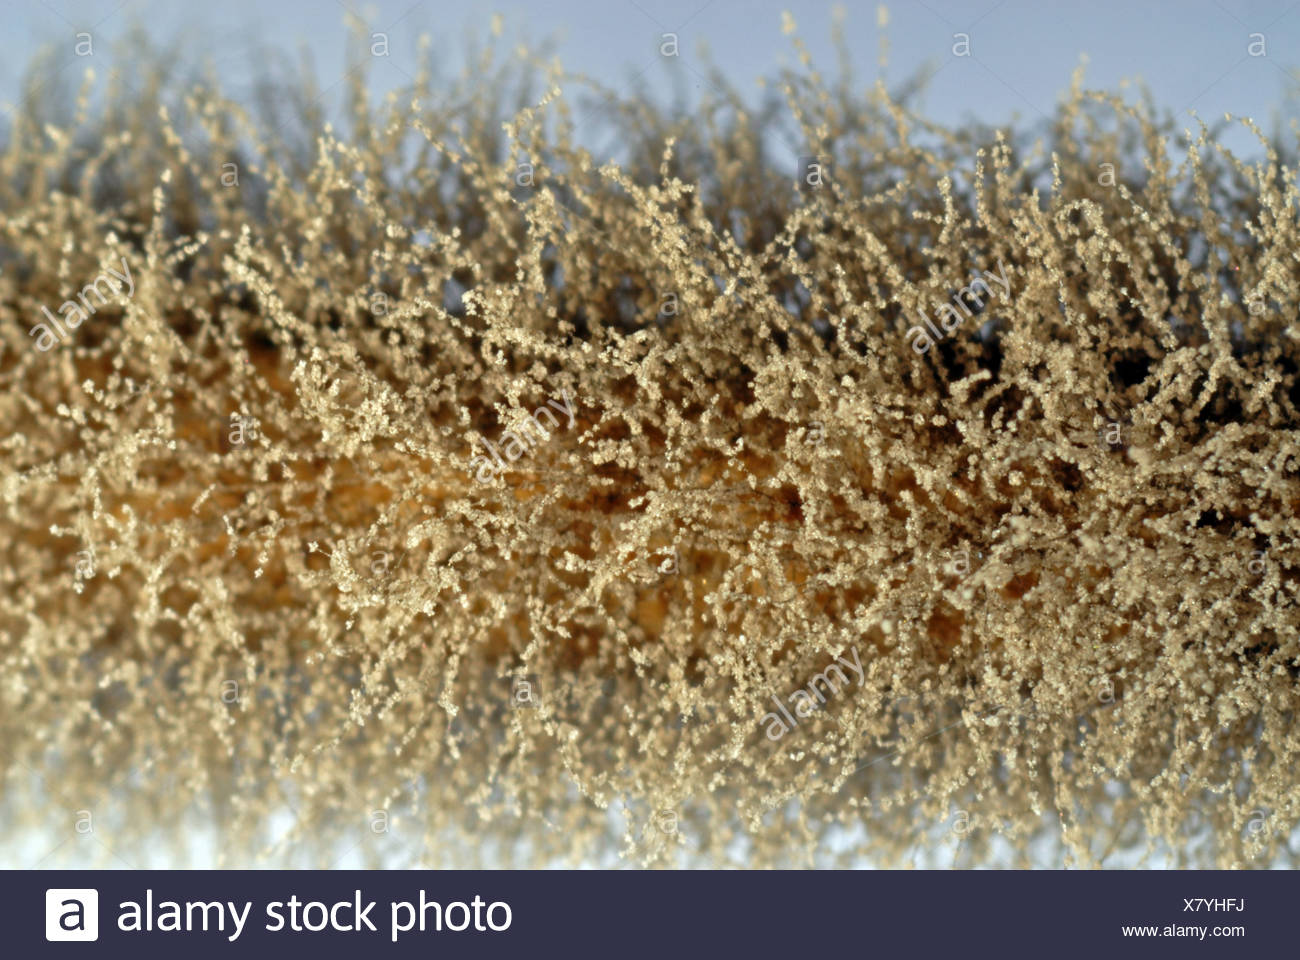 Grey mould (Gray mold), Botrytis cinerea, mycelium on Pelargonium stem - Stock Image